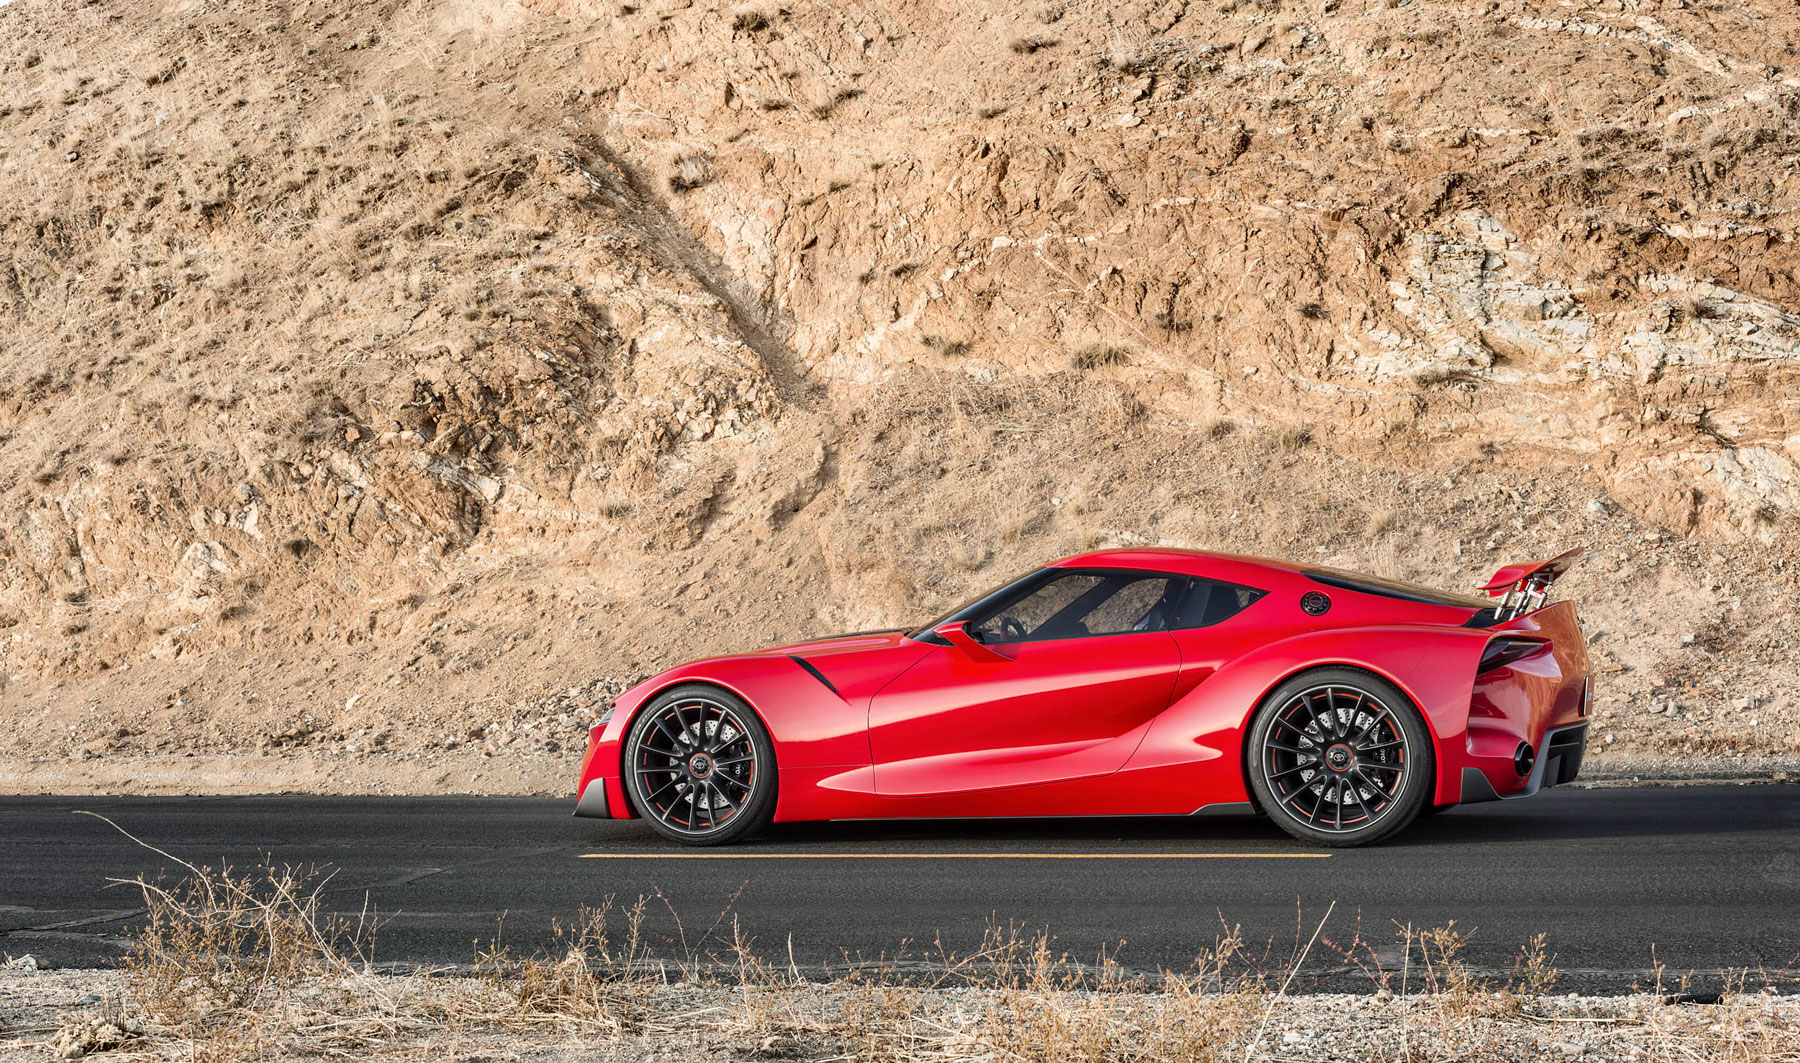 Toyota FT-1 concept profile